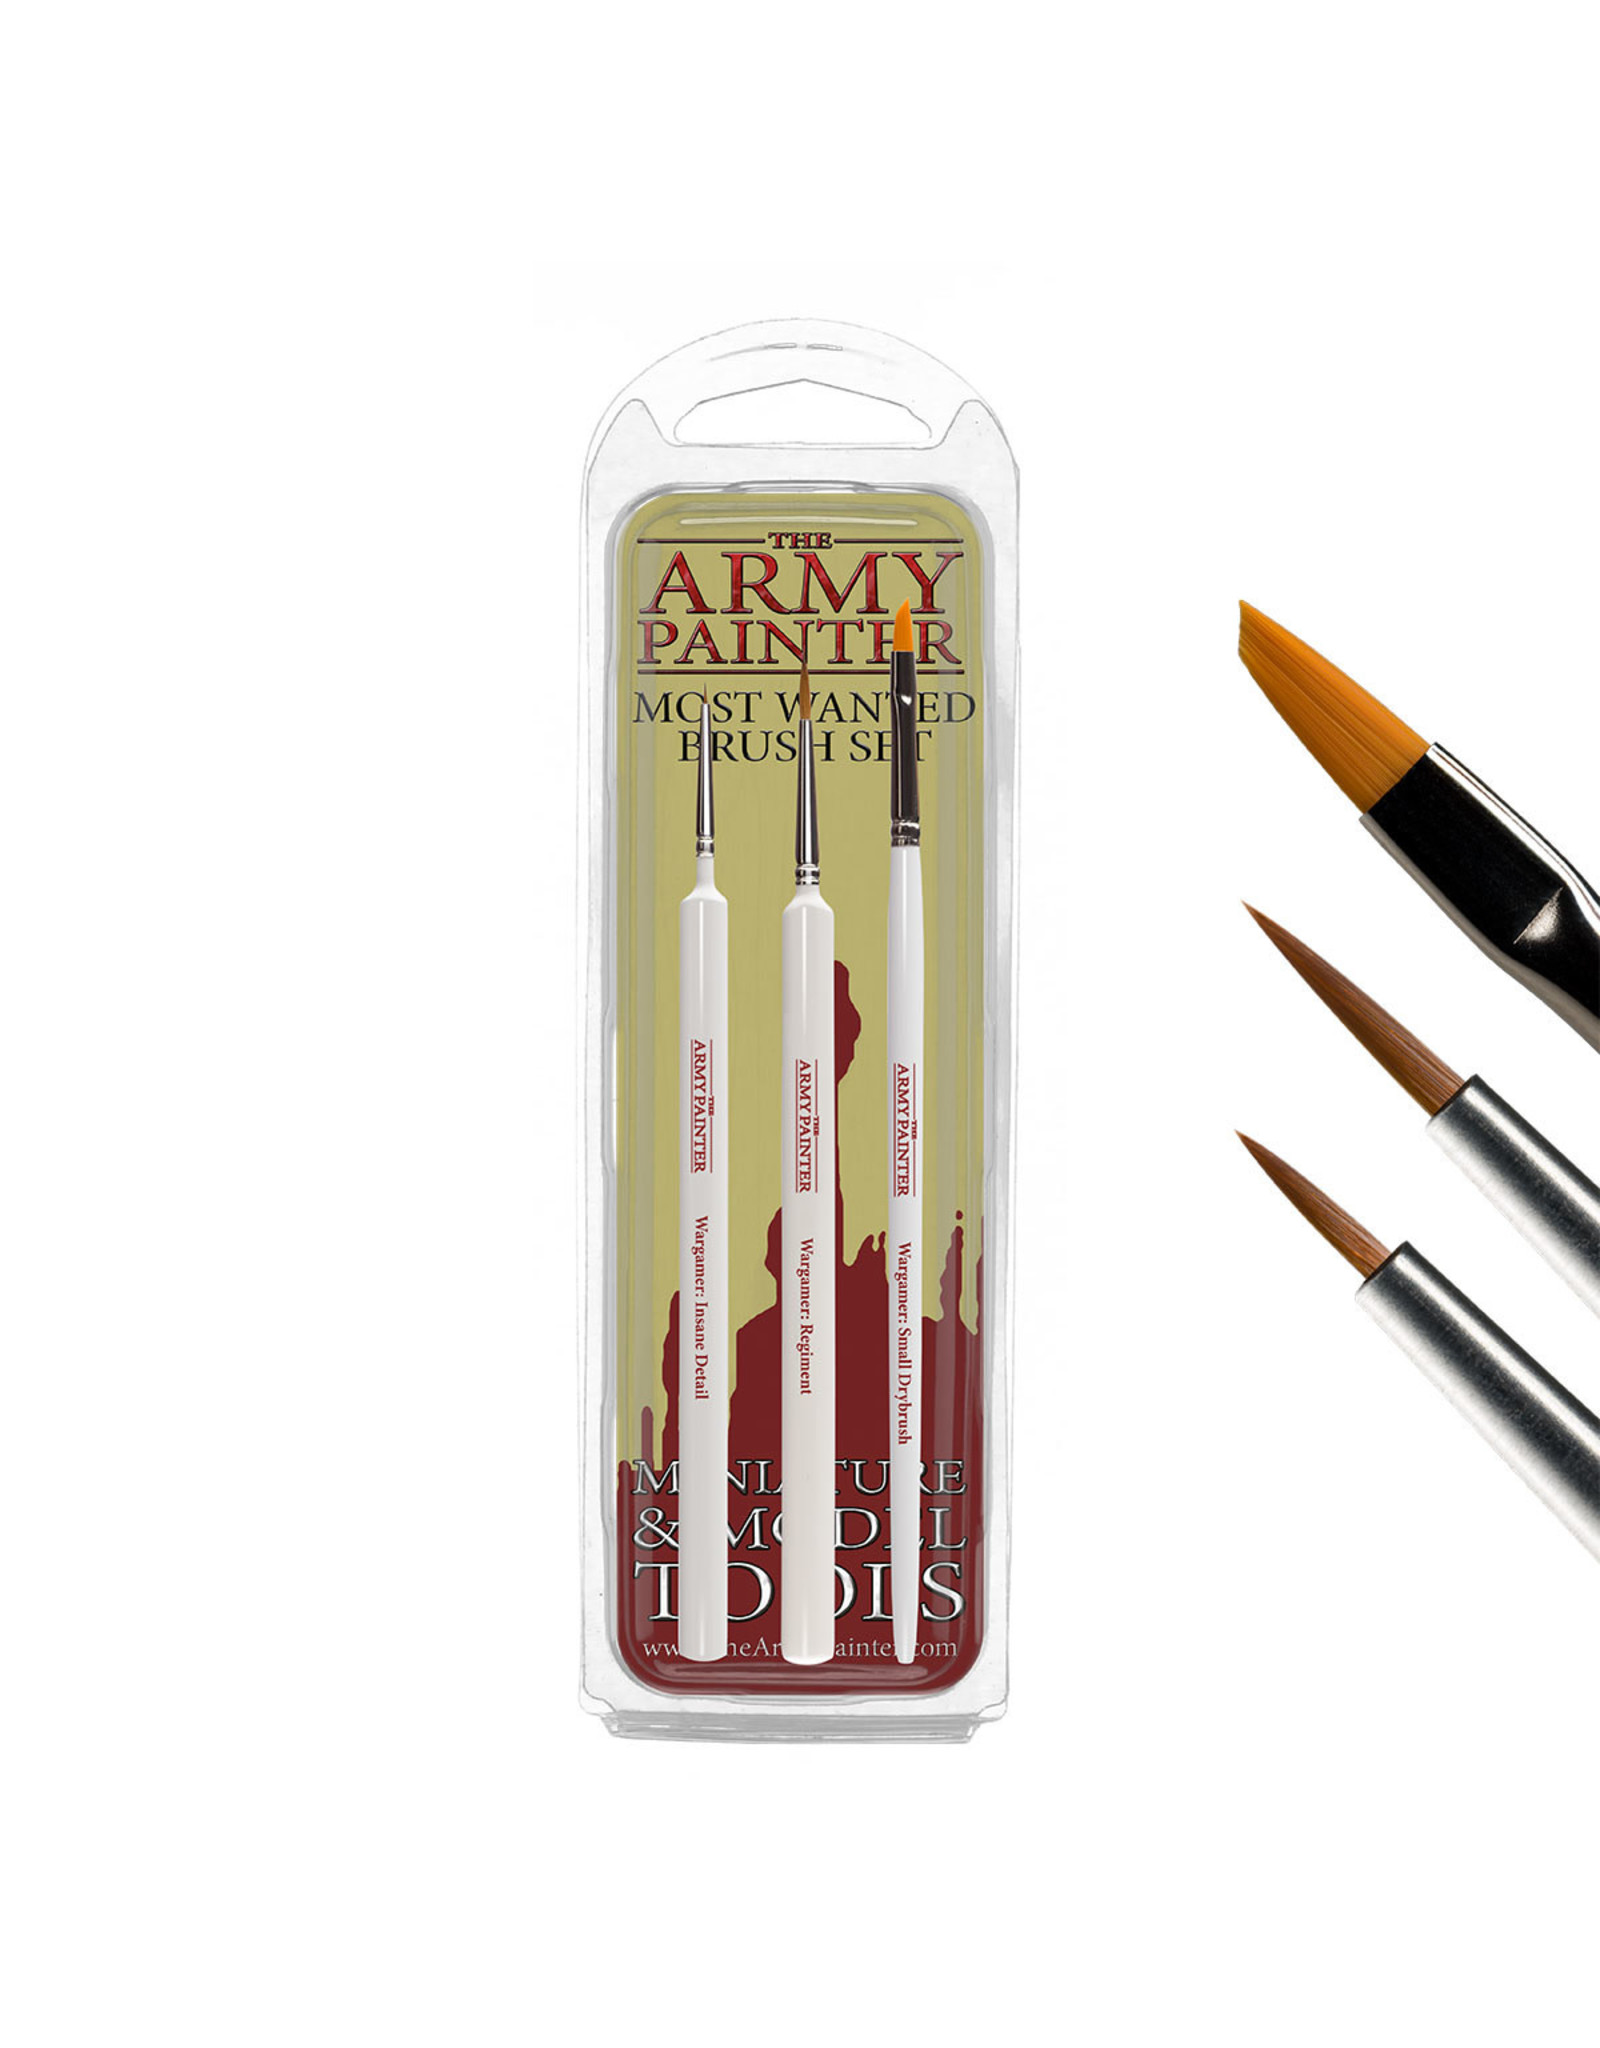 THE ARMY PAINTER ARMY PAINTER WARGAMER MOST WANTED BRUSH SET